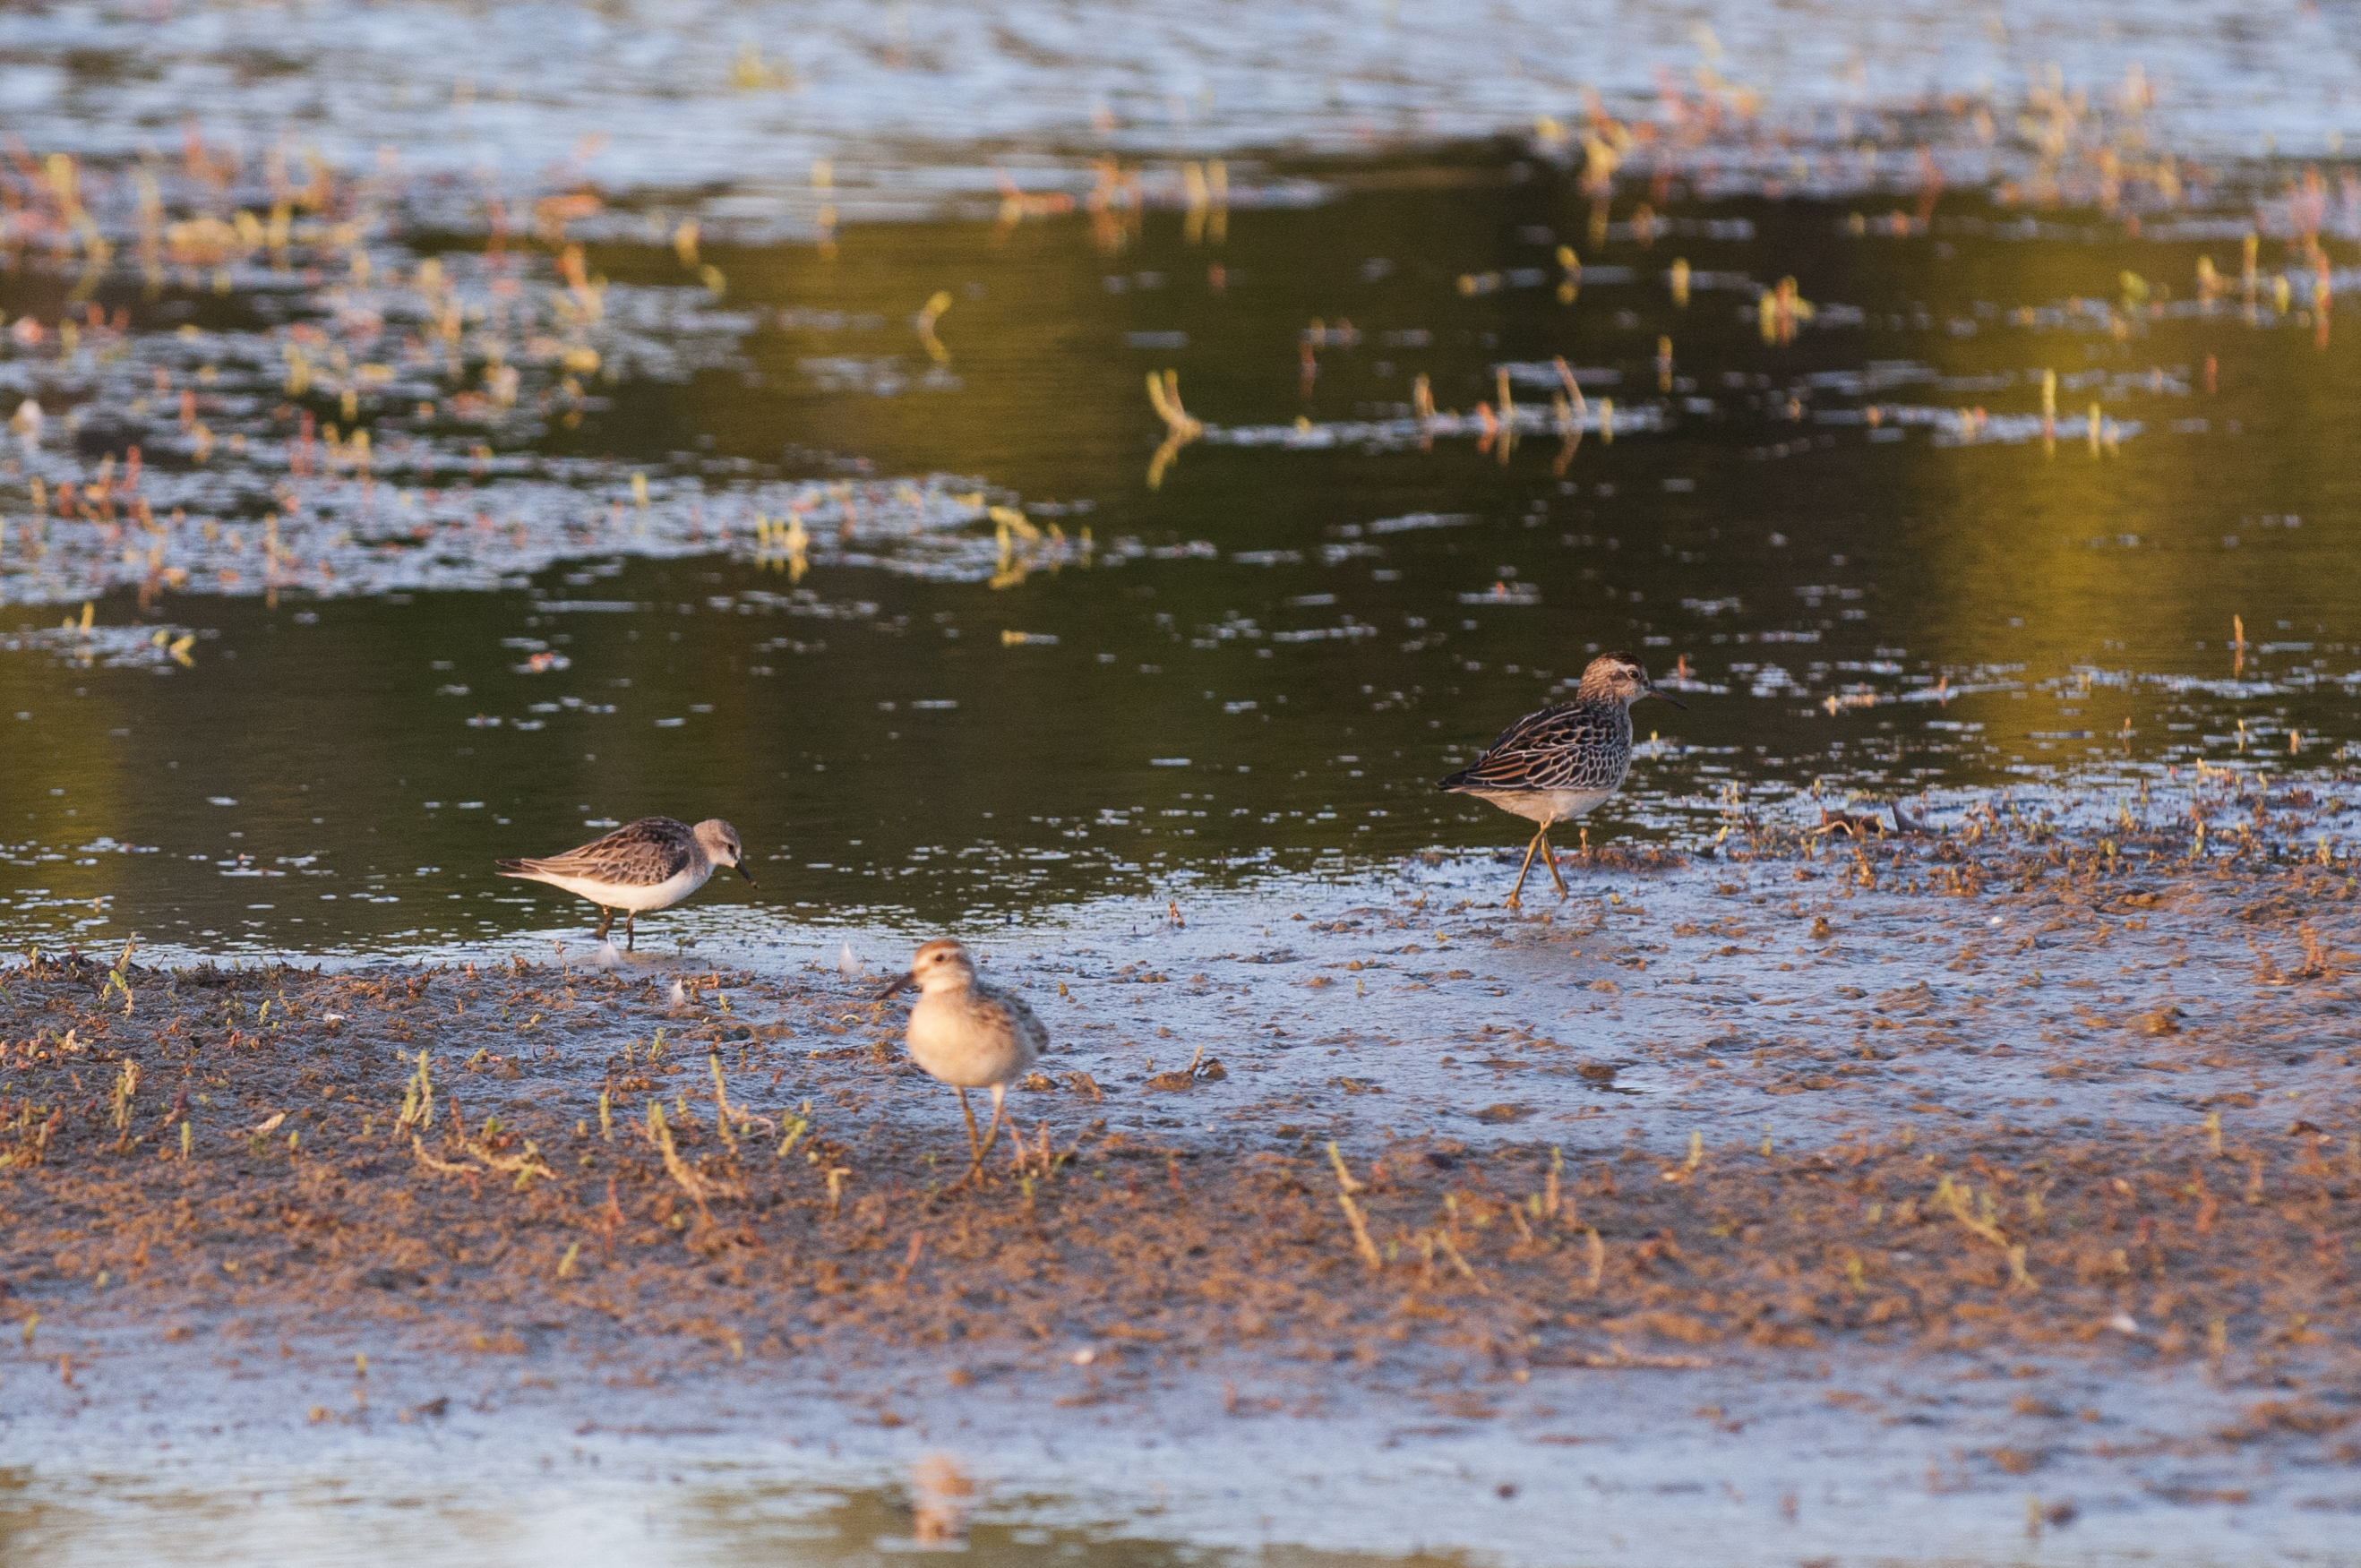 Sharp-tailed Sandpipers and Red-necked Stint